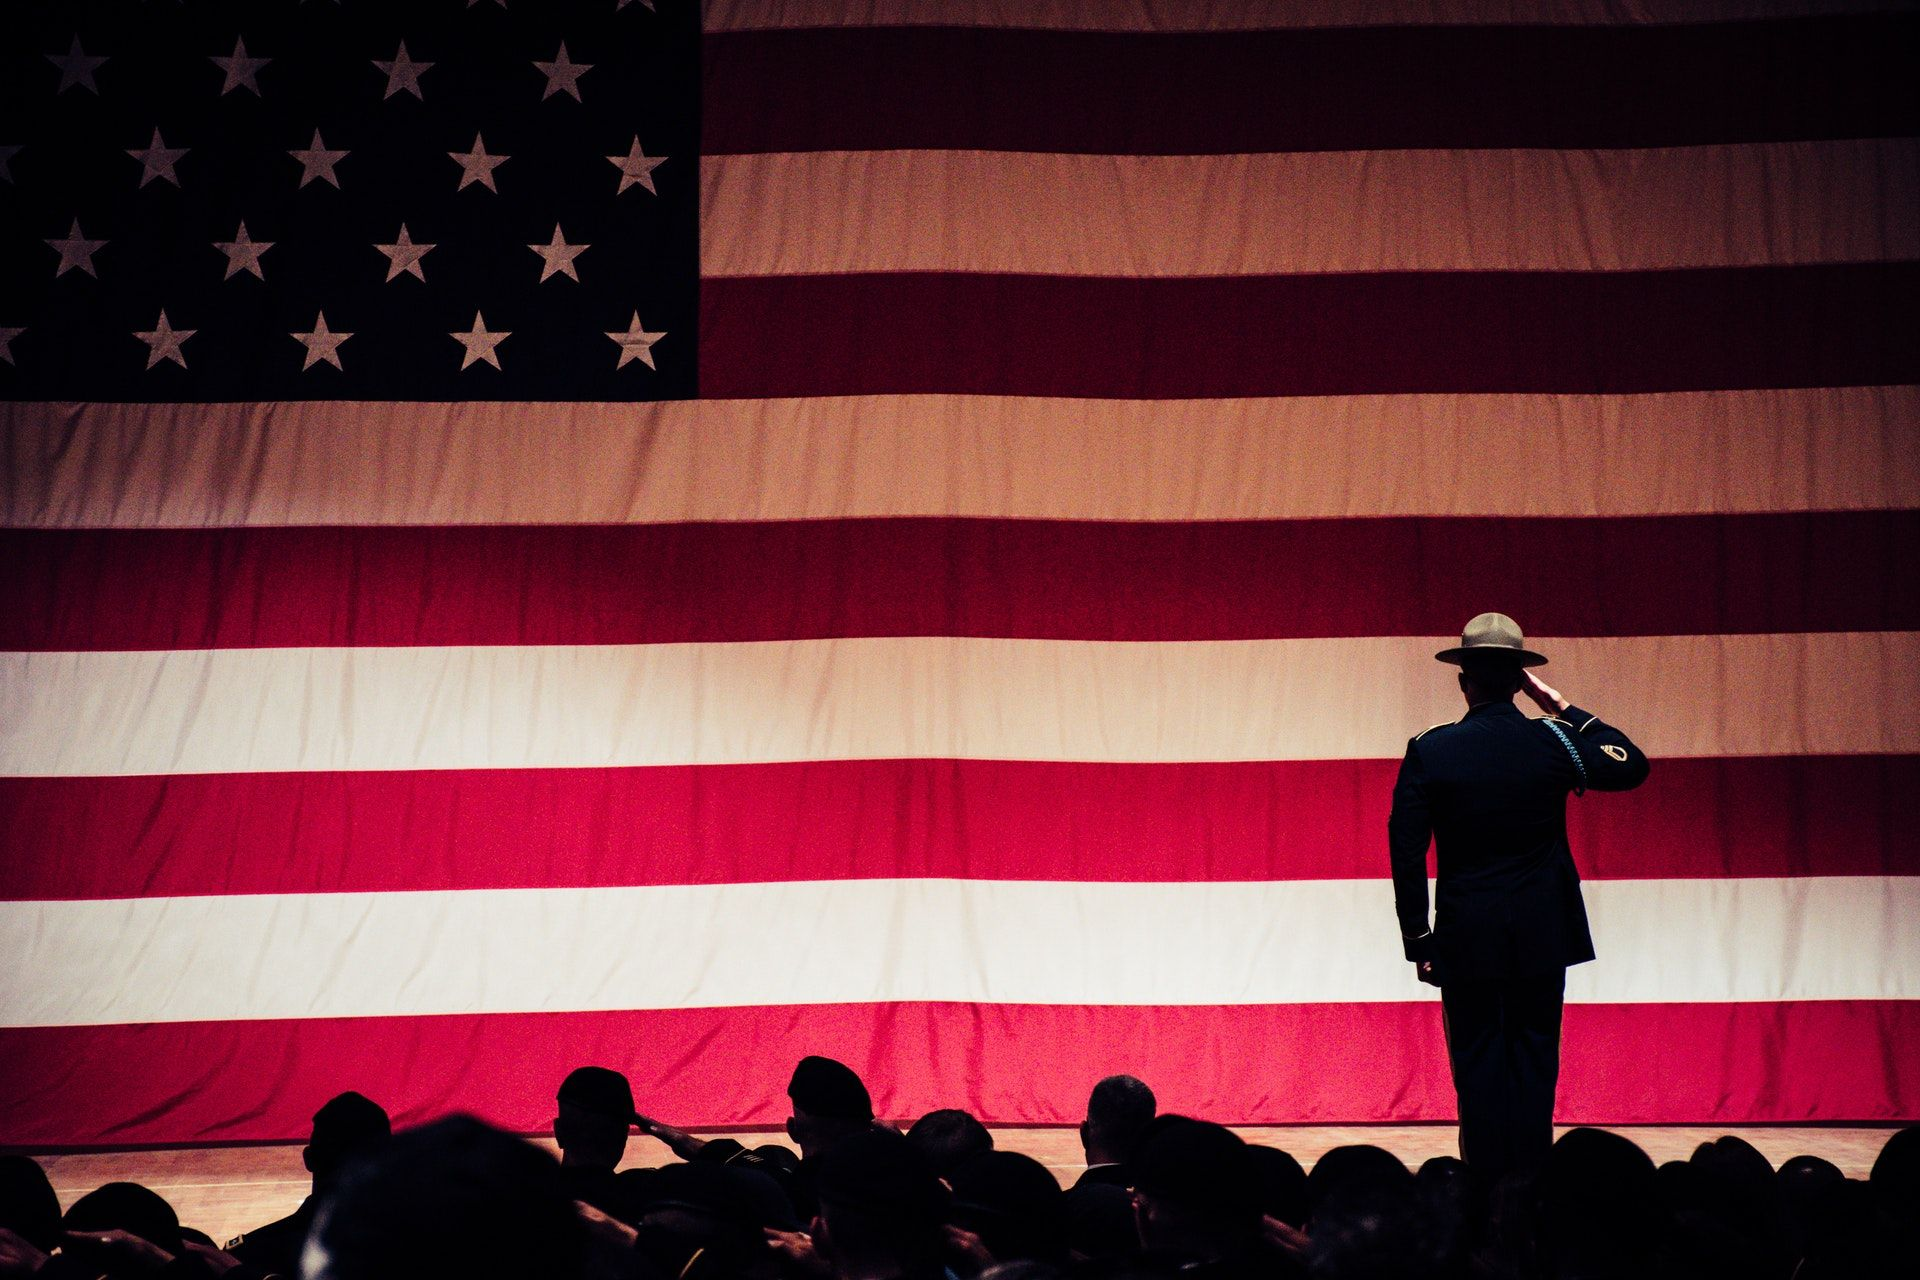 People in silhouette salute a large American flag